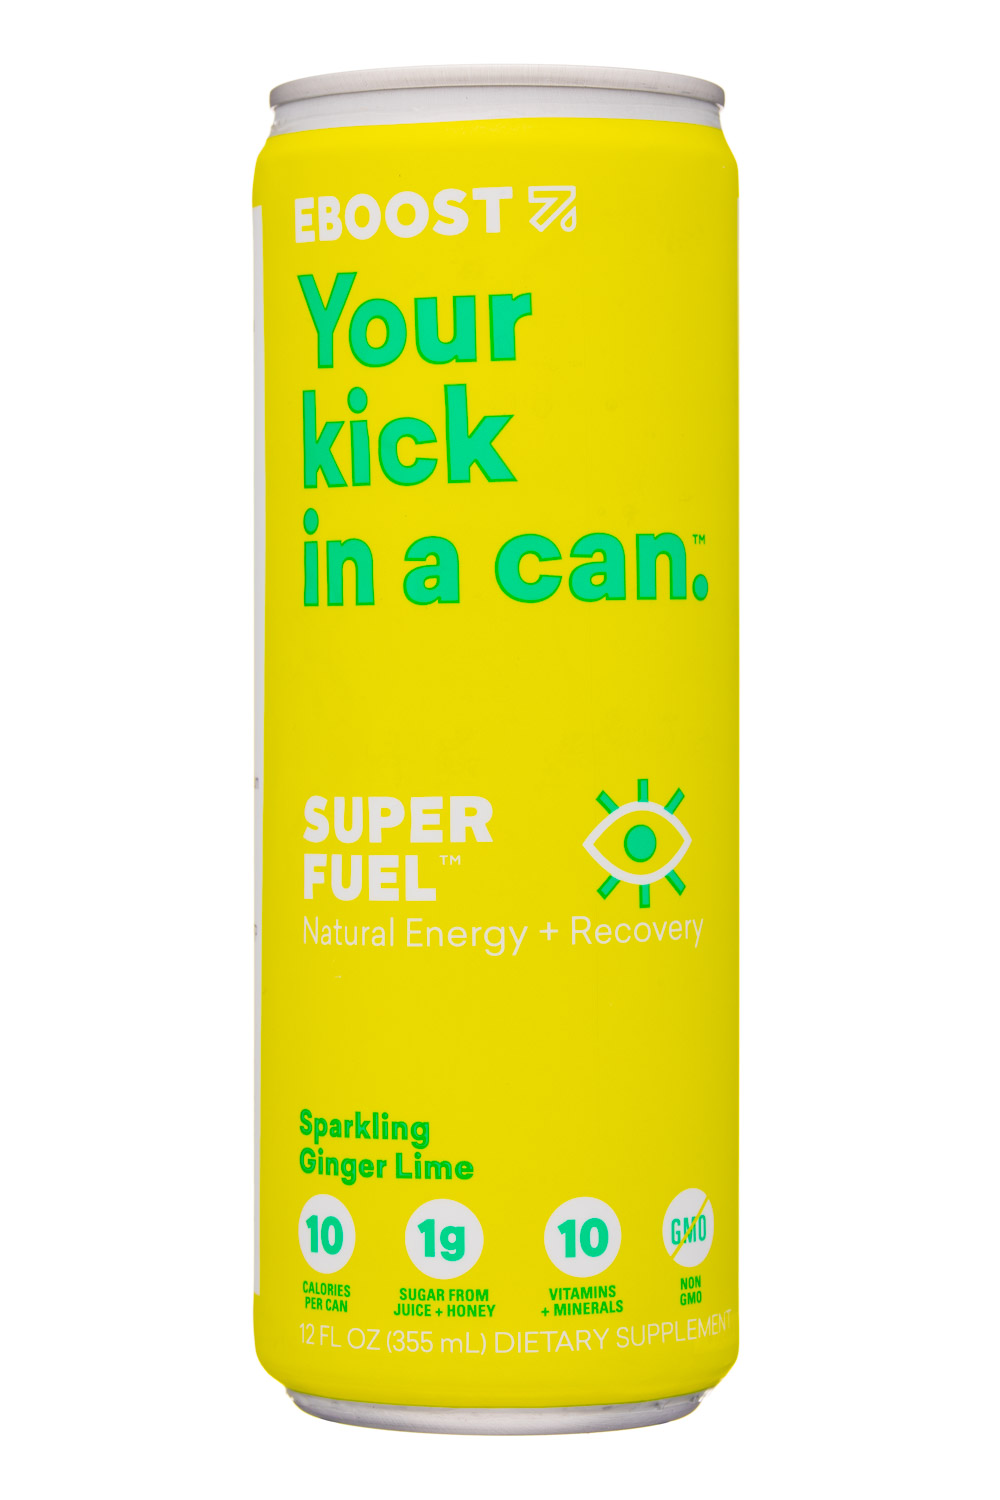 SuperFuel: Sparkling Ginger Lime